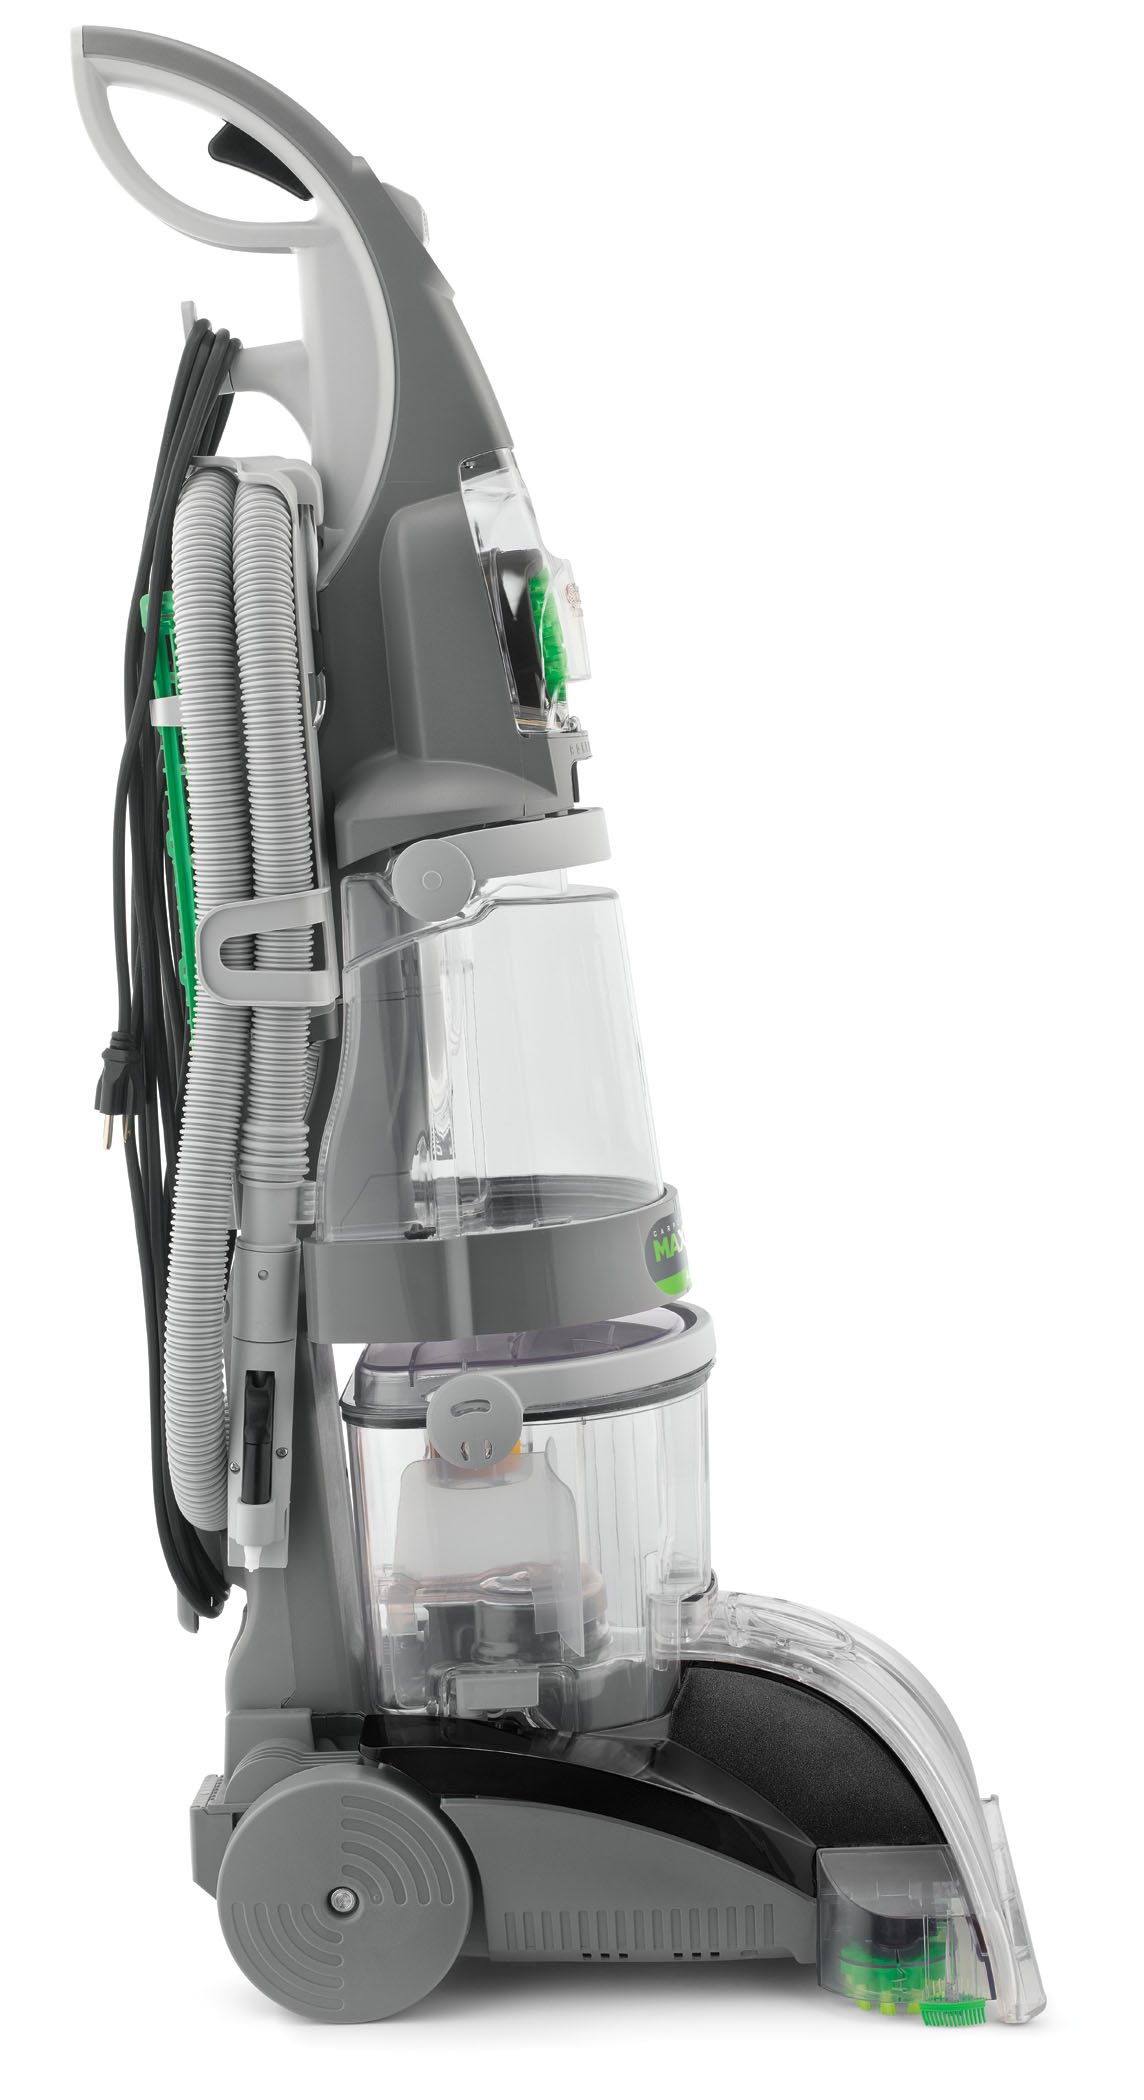 Galleon Hoover Carpet Cleaner Max Extract Dual V Widepath Carpet Cleaner Machine F7412900